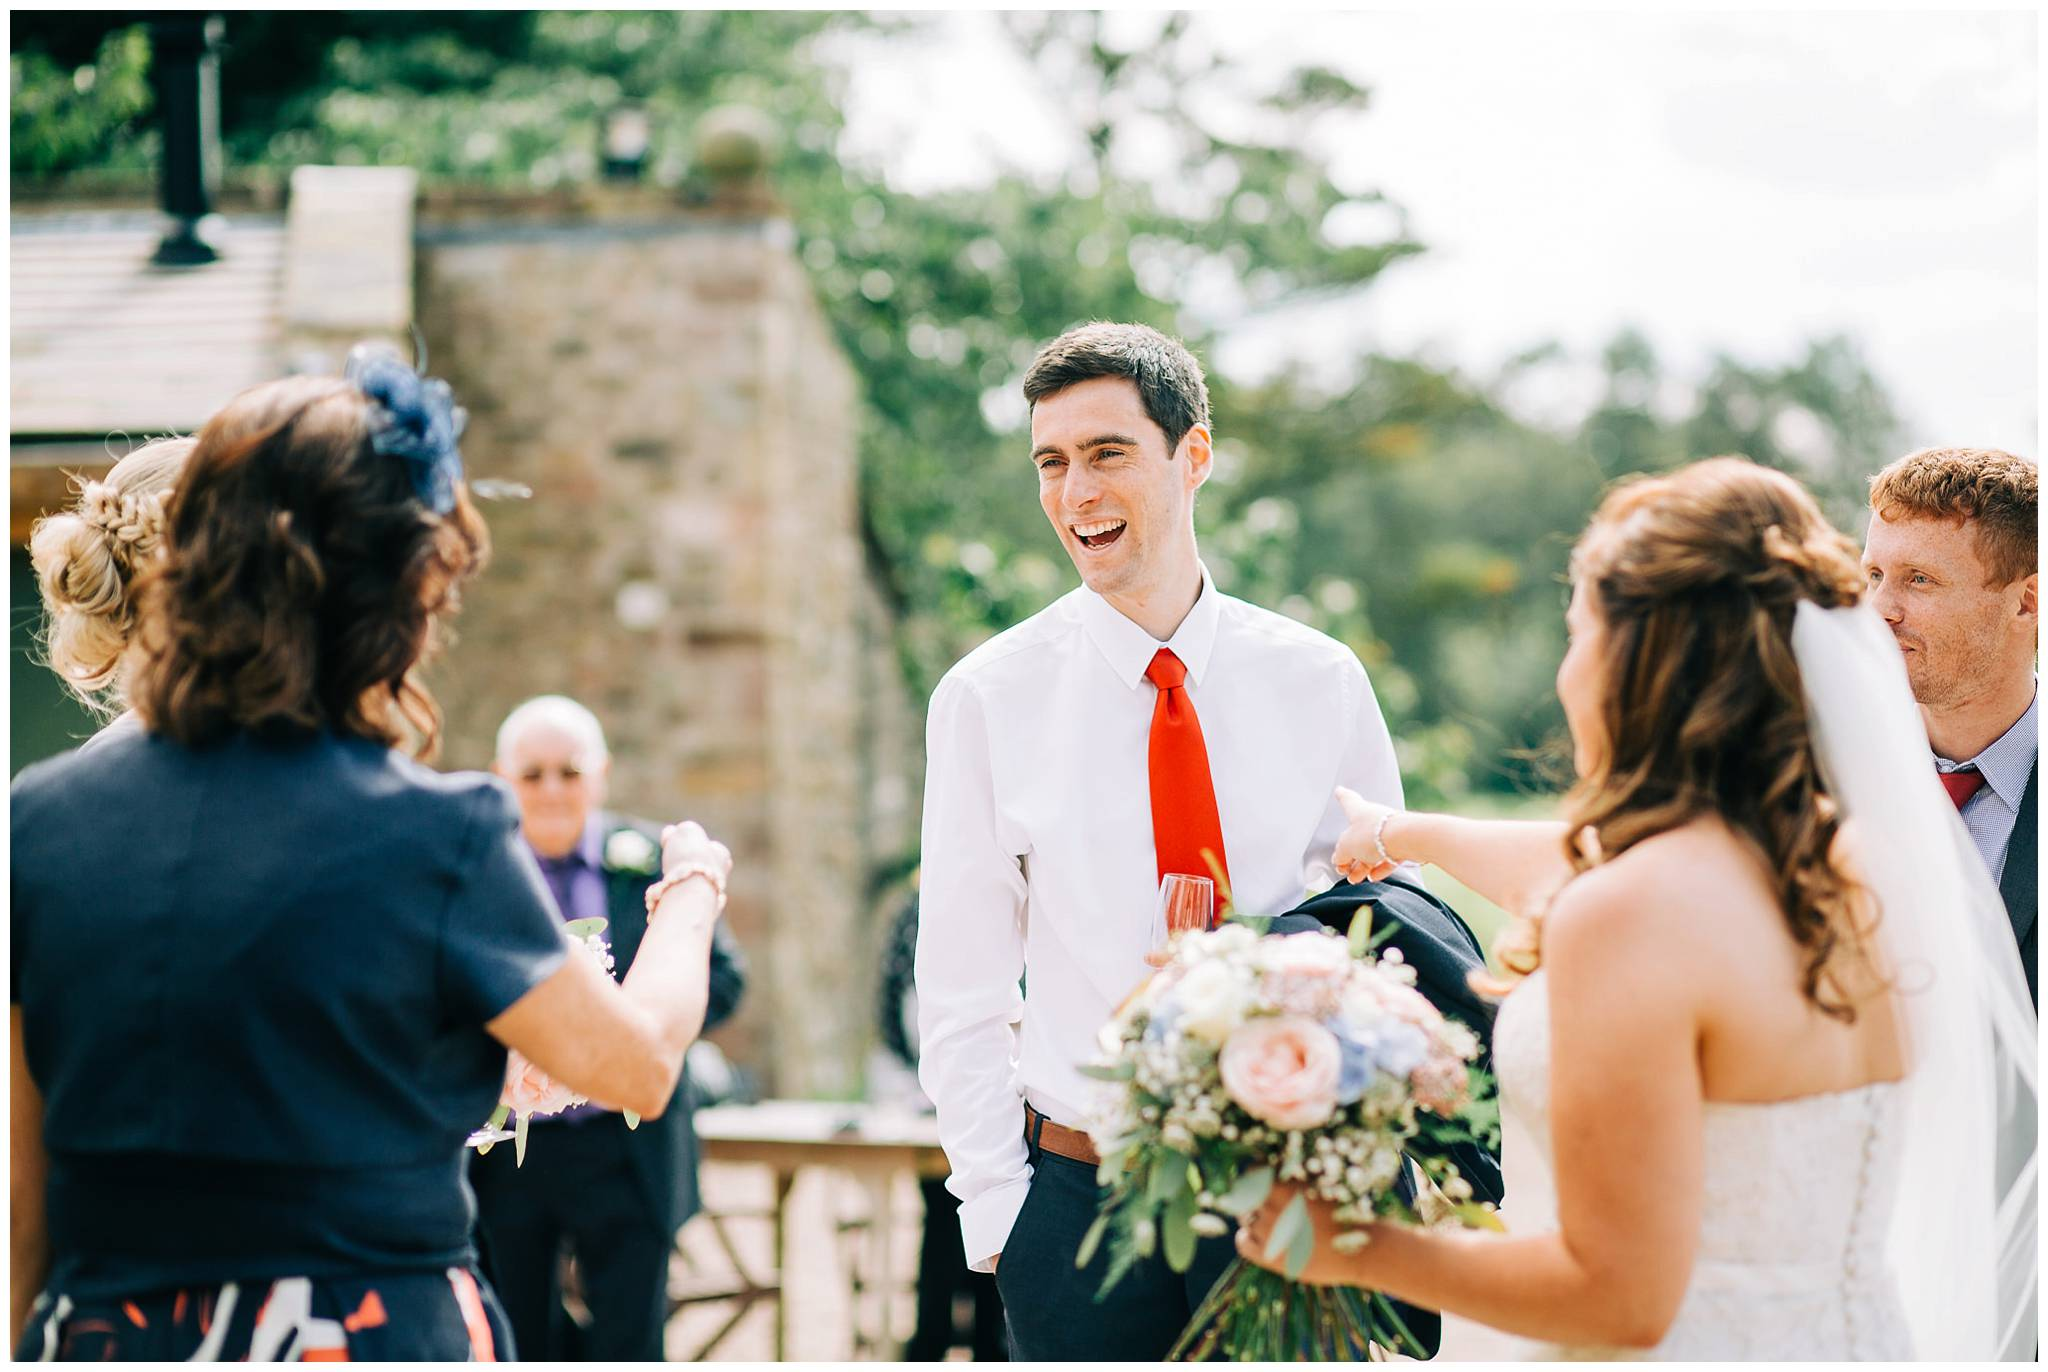 man in bright red tie is smiling and laughing with other wedding guests outside